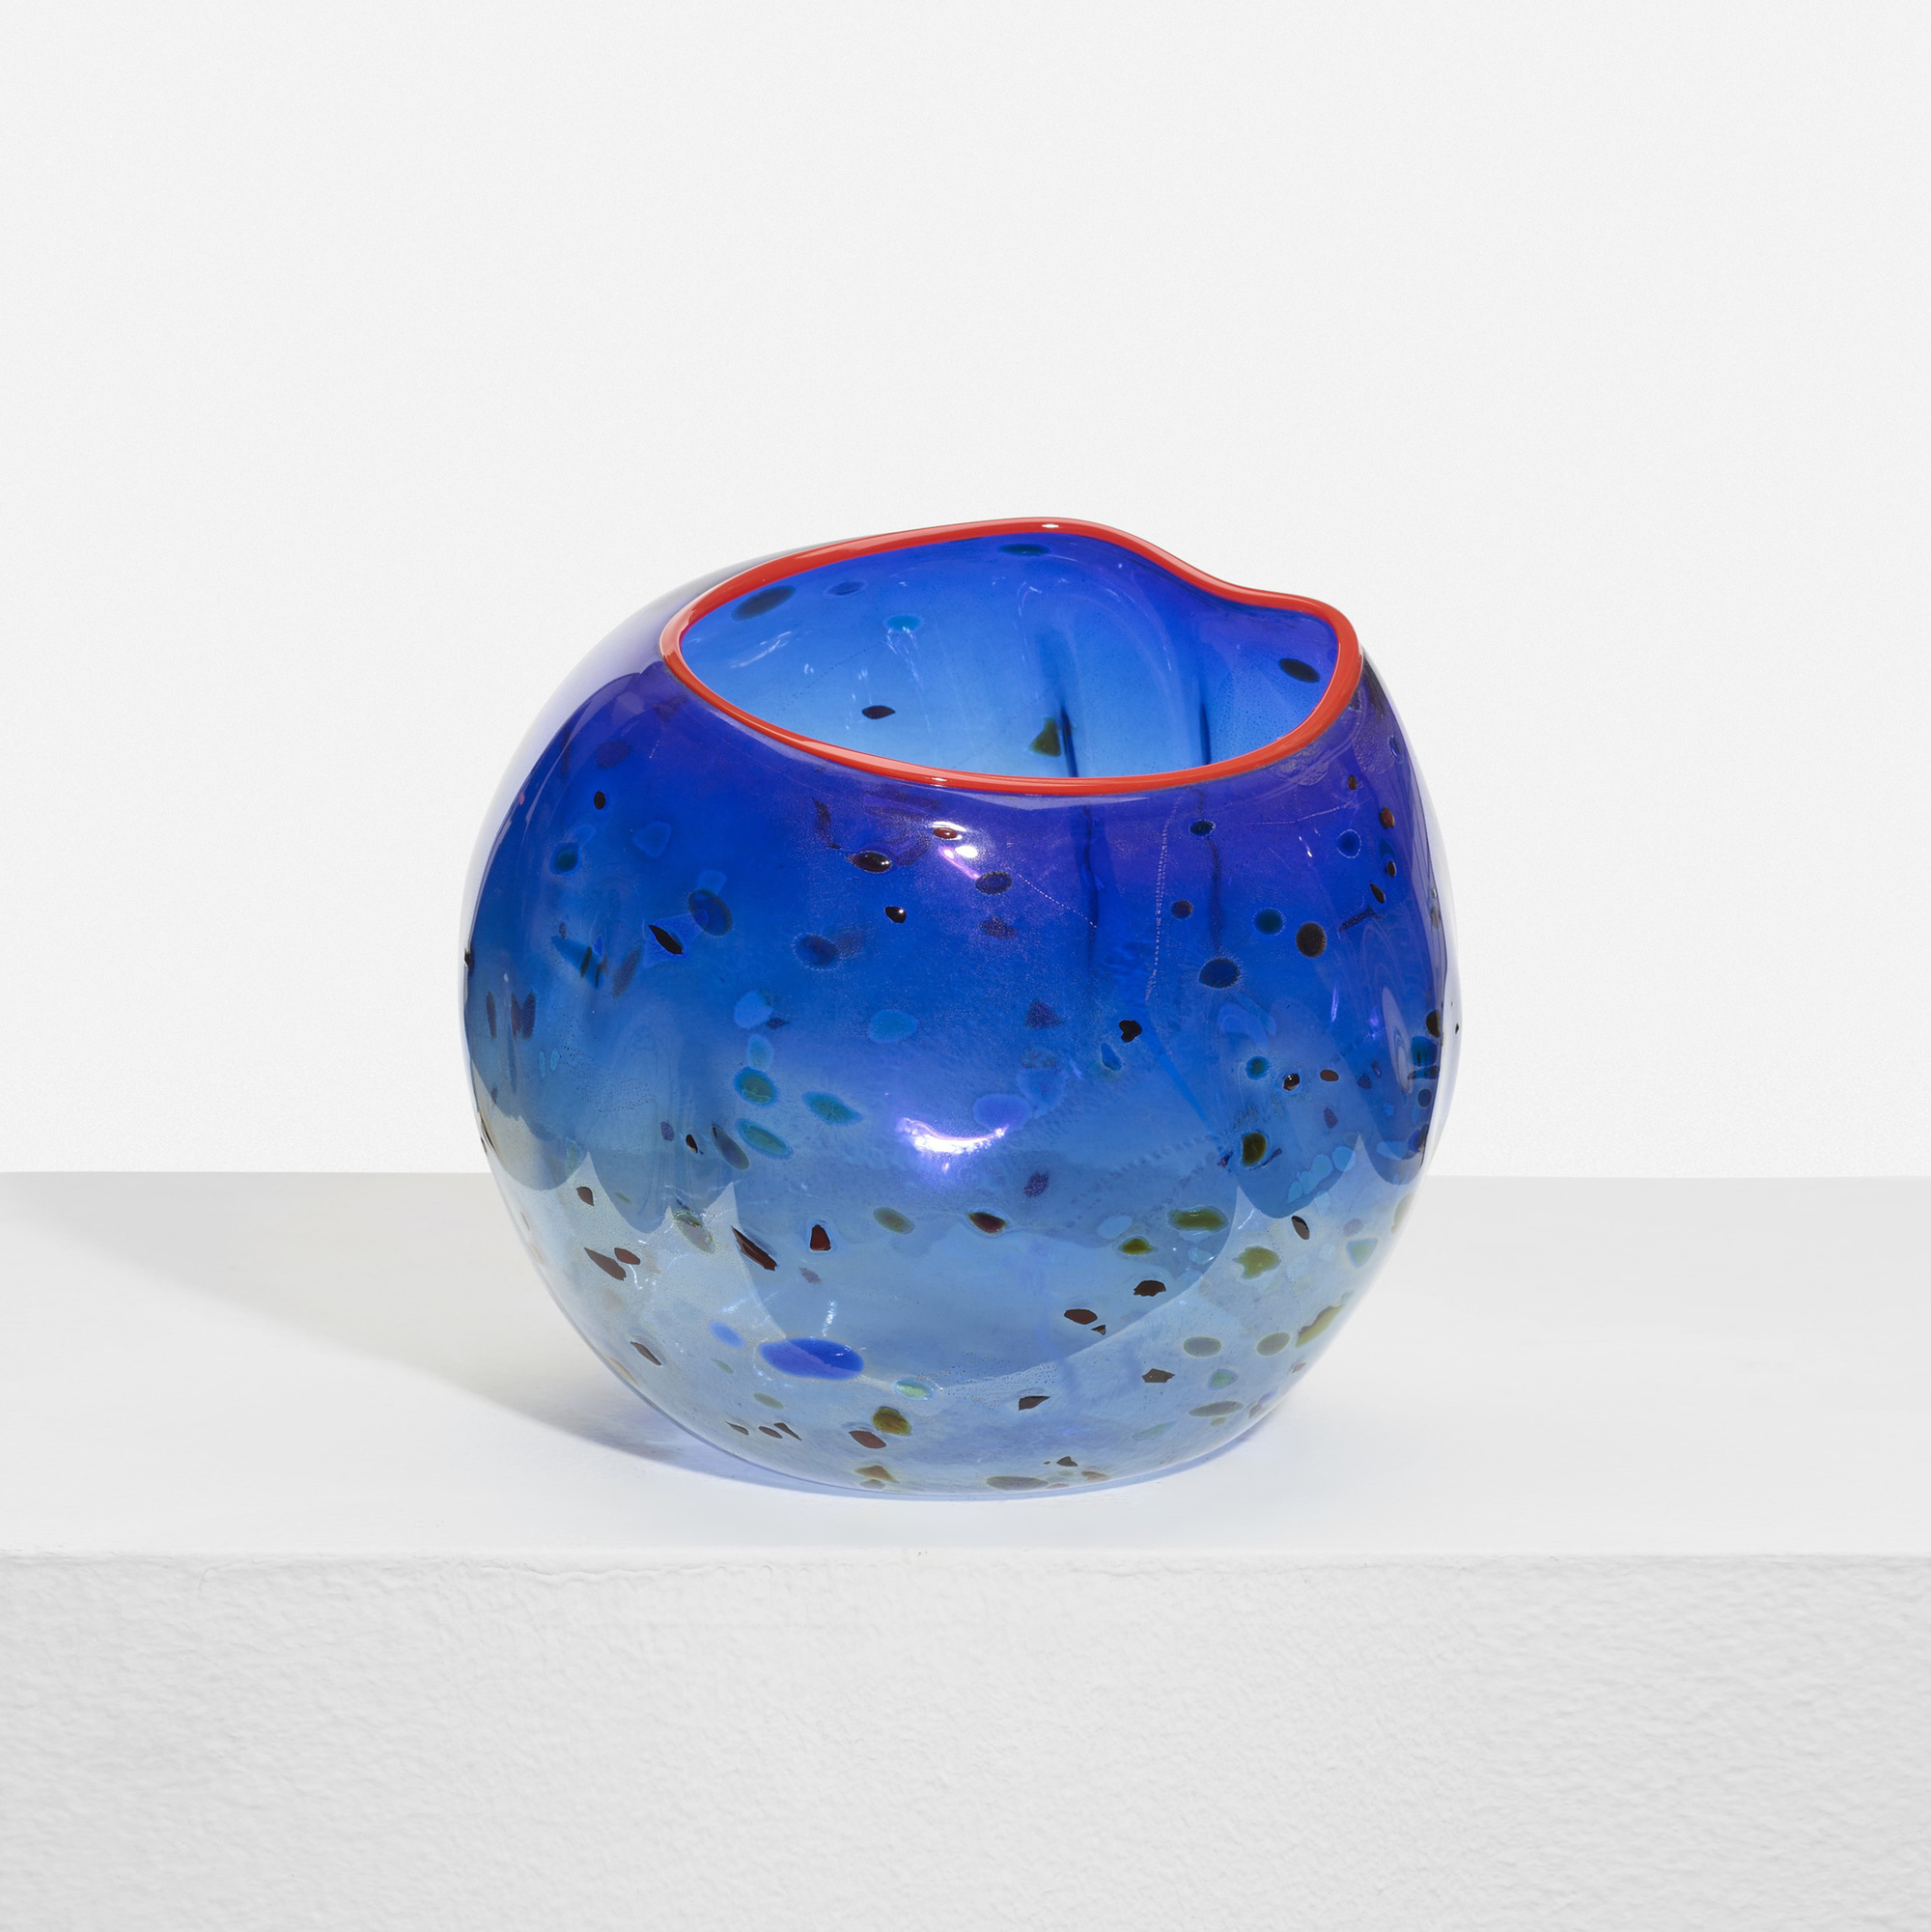 257: Dale Chihuly / Cobalt Blue Basket with Red Lip Wrap (2 of 3)